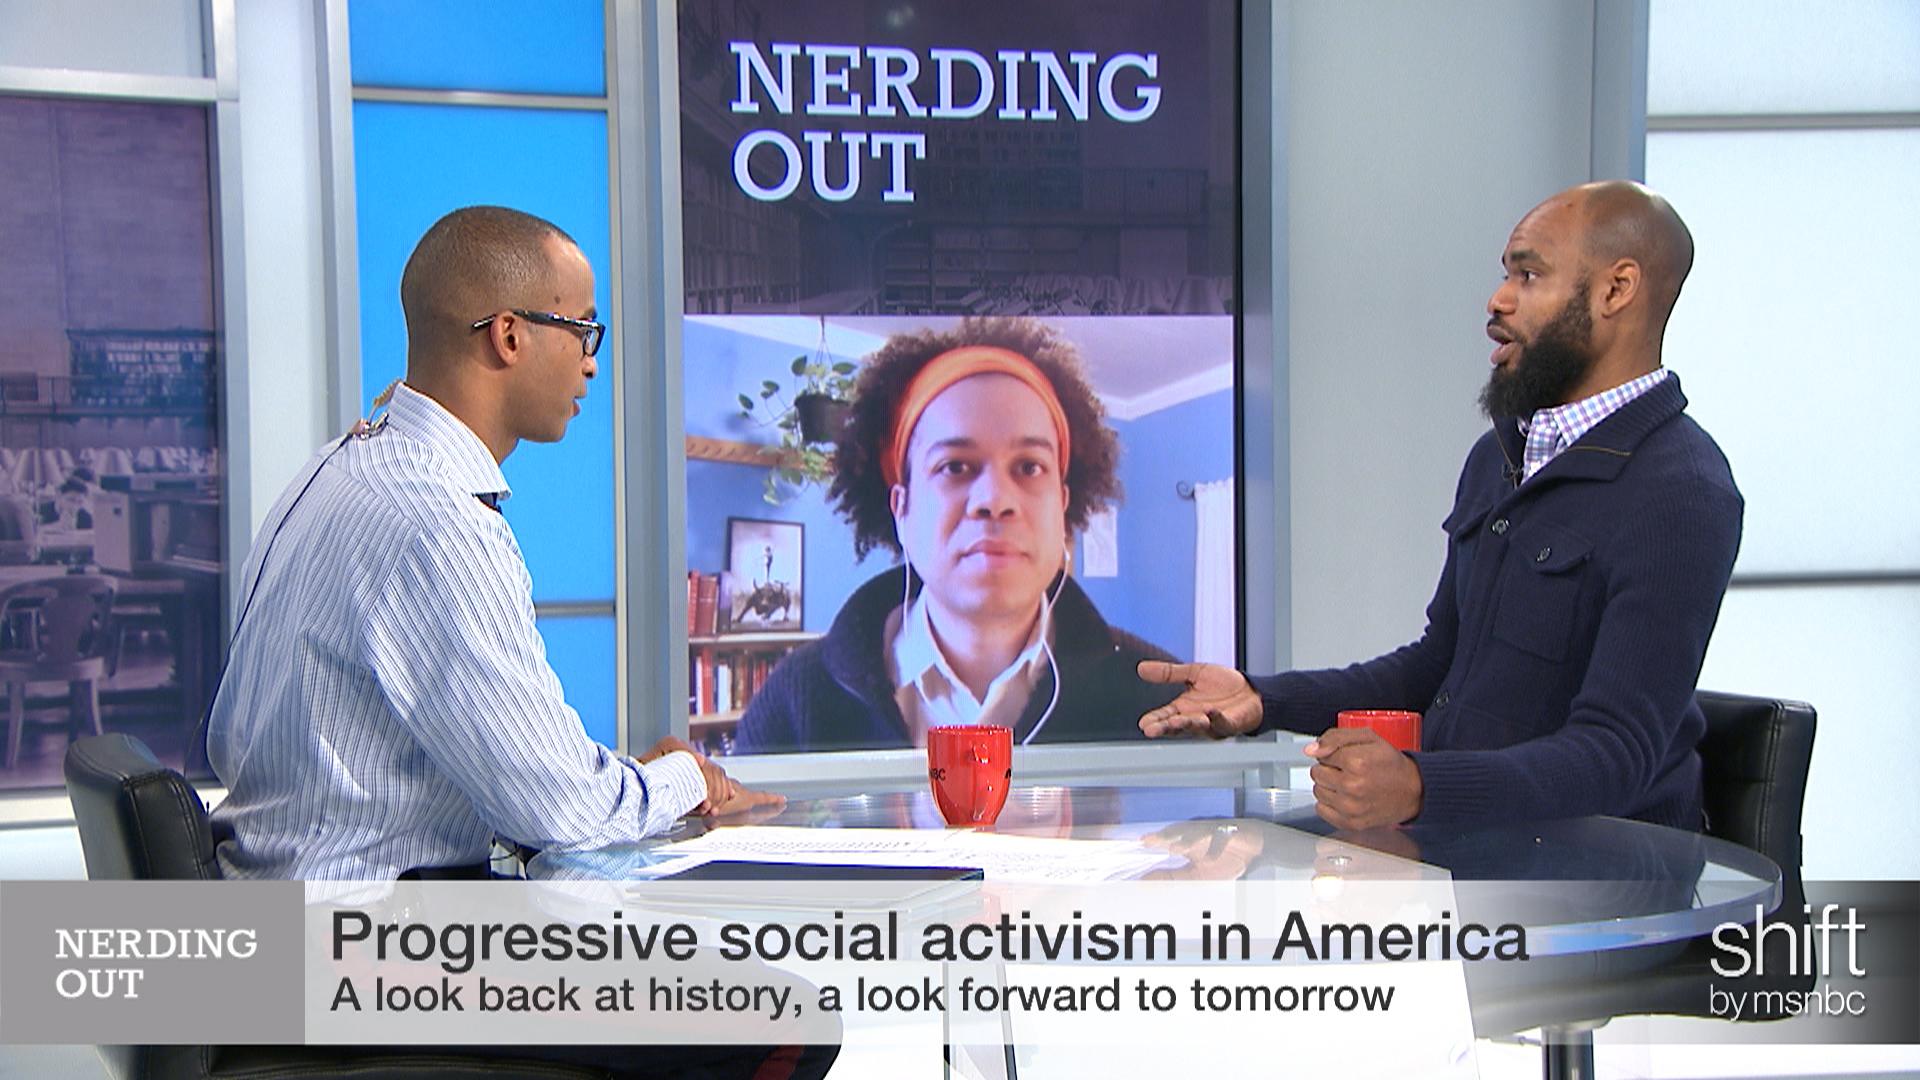 America's progressive activism, then & now